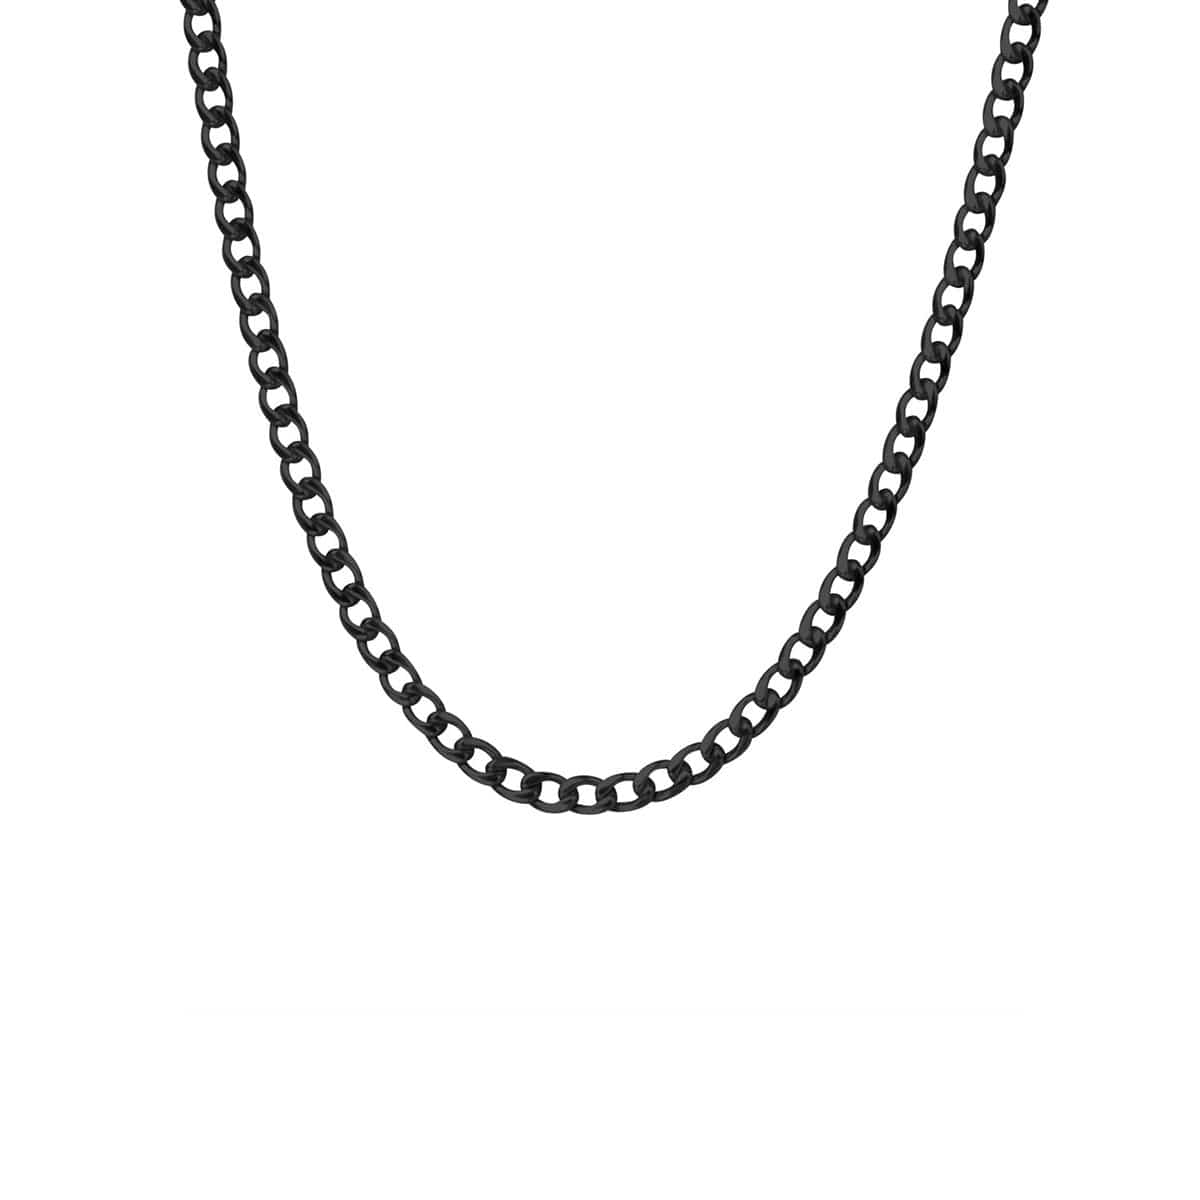 Black Stainless Steel 5 mm Round Curb Chain Chains